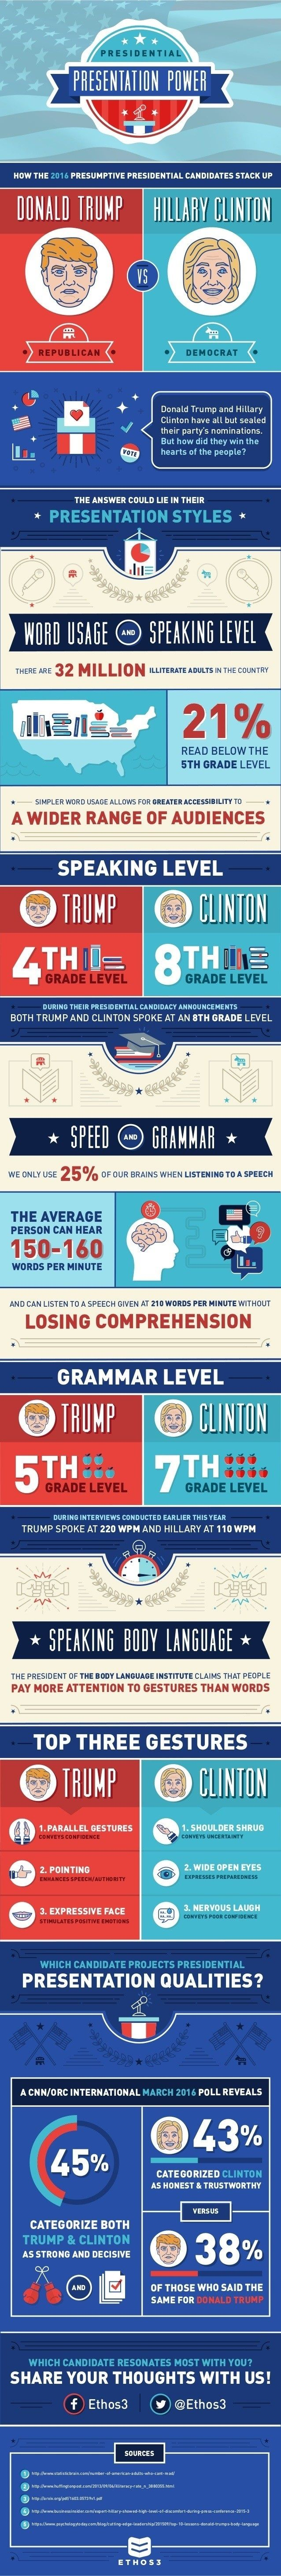 Career Management - Presentation Power: How the 2016 Presumptive Presidential Nominees Stack Up [Infographic] : MarketingProfs Article